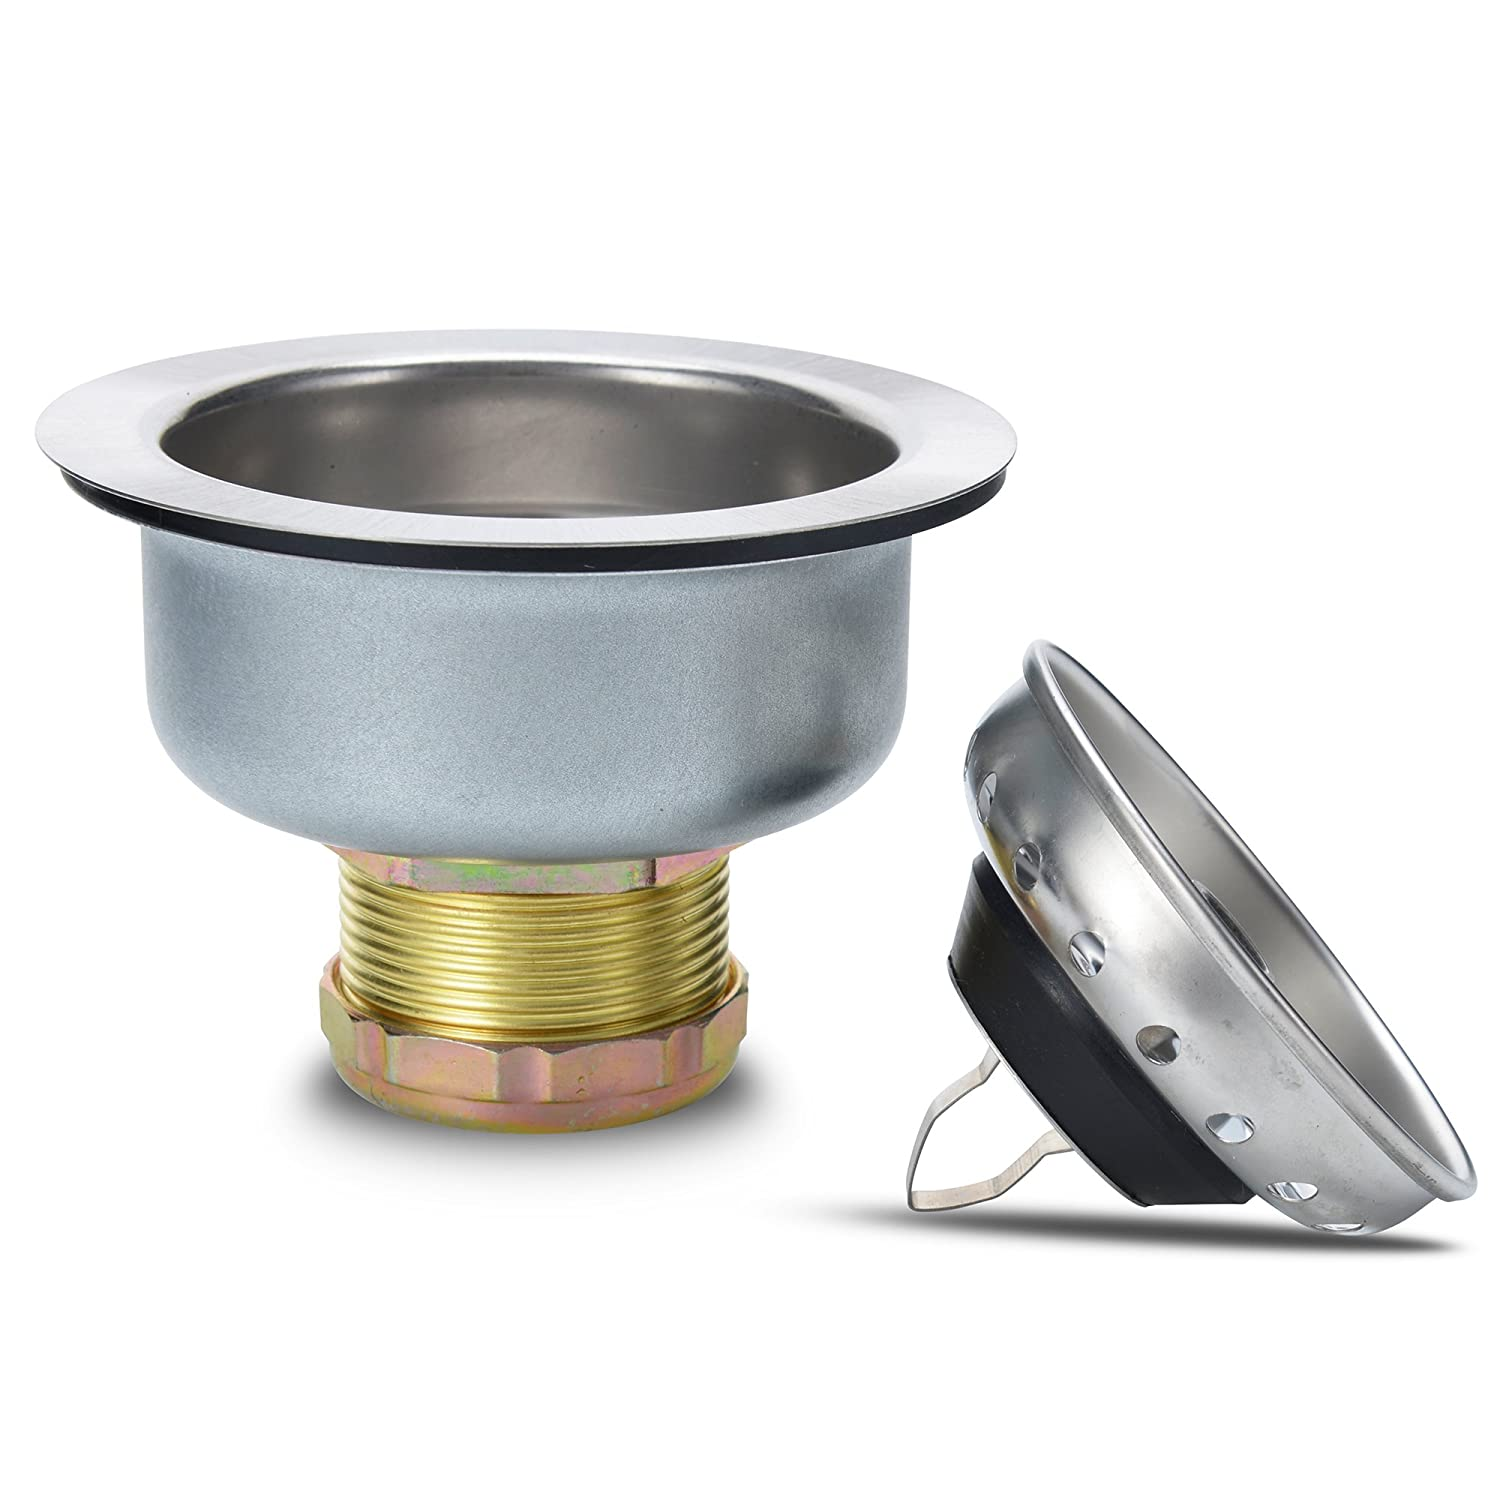 2-in-1 Stainless Steel Spring Clip Kitchen Sink Drain Strainer And Stopper Spring Clip - Universal Kitchen Sink Strainer Stopper